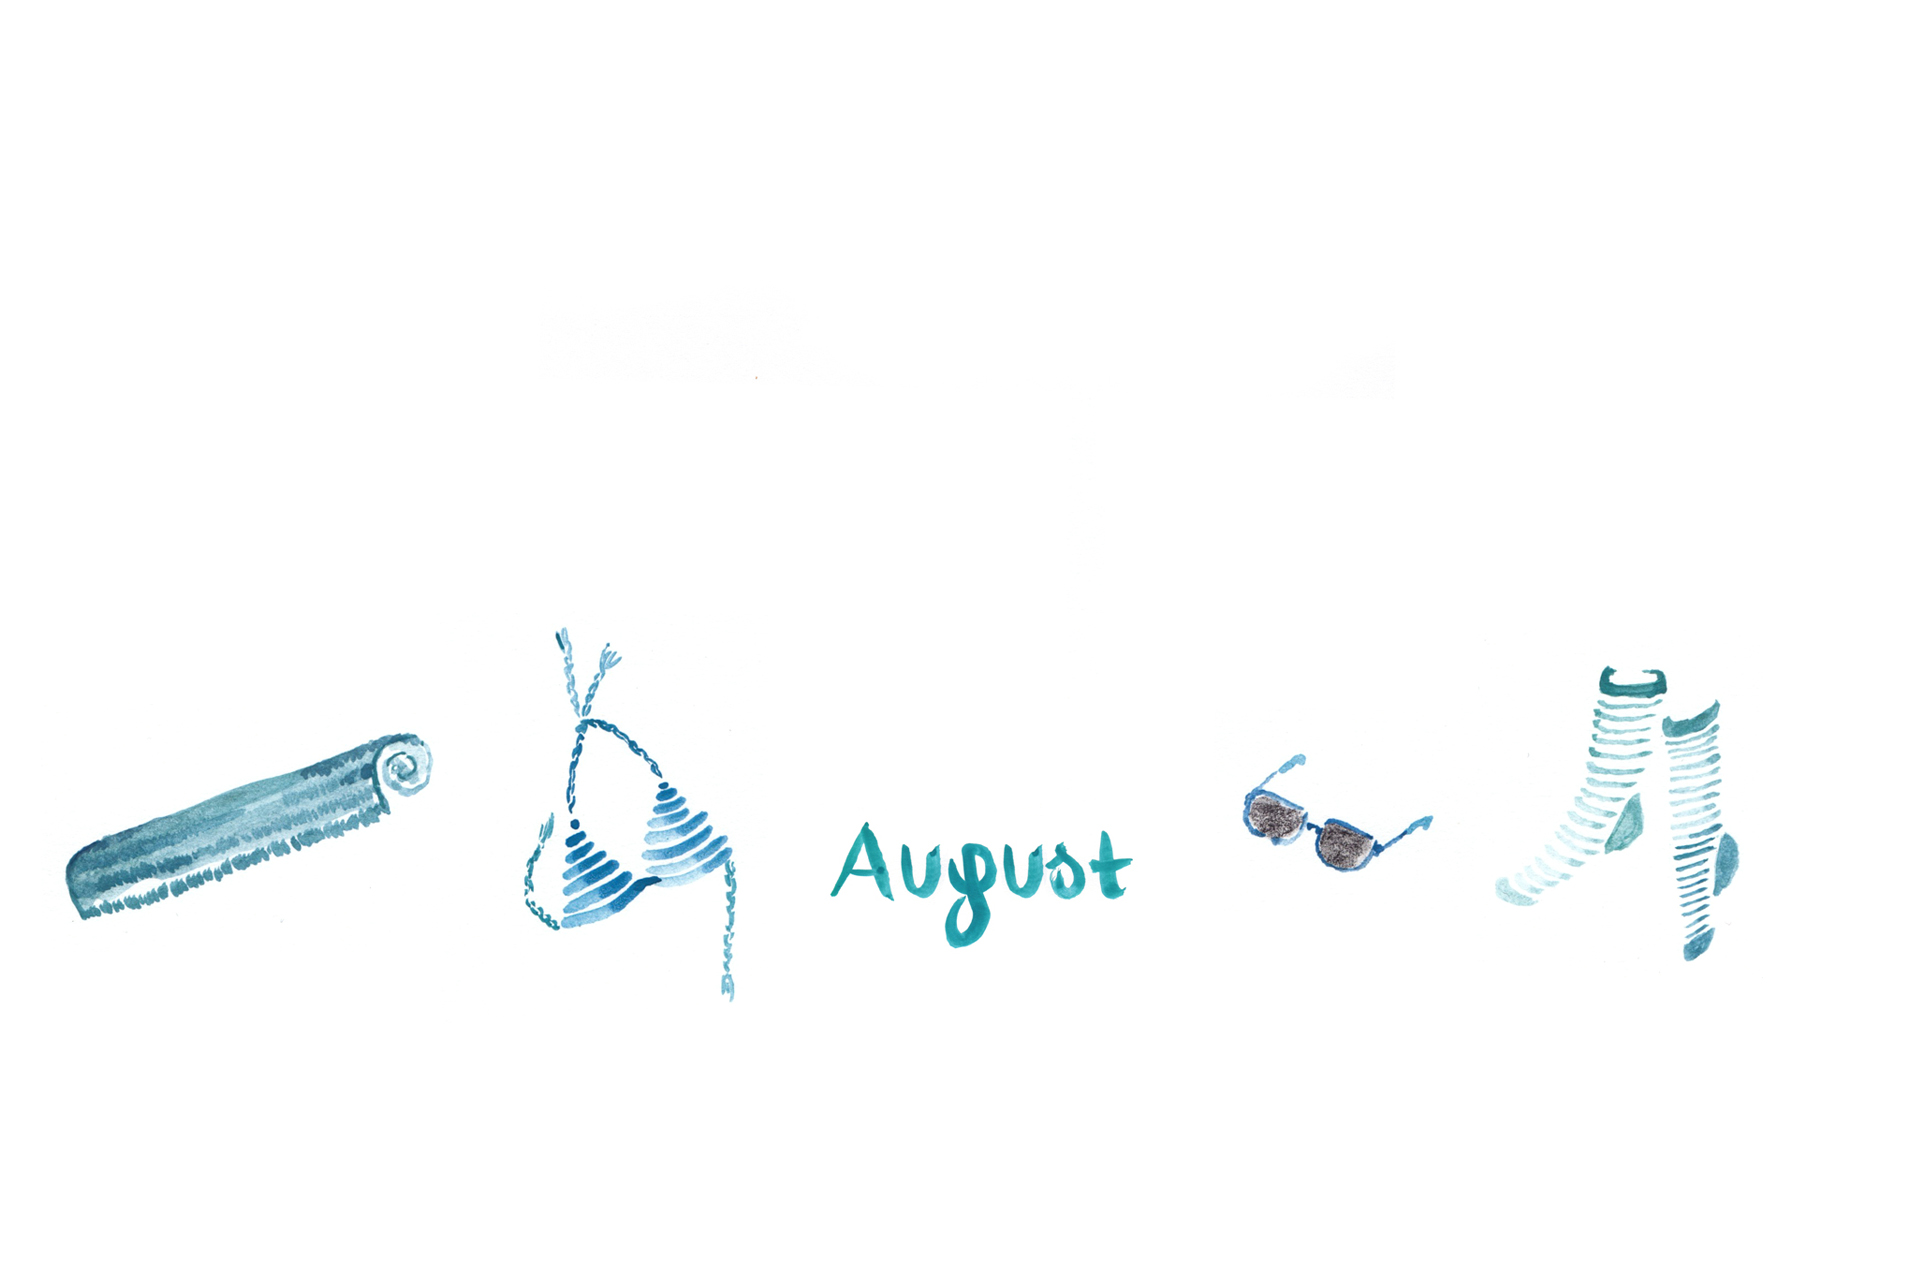 http://welovehandmade.at/2015/07/31/wallpaper-august-3/